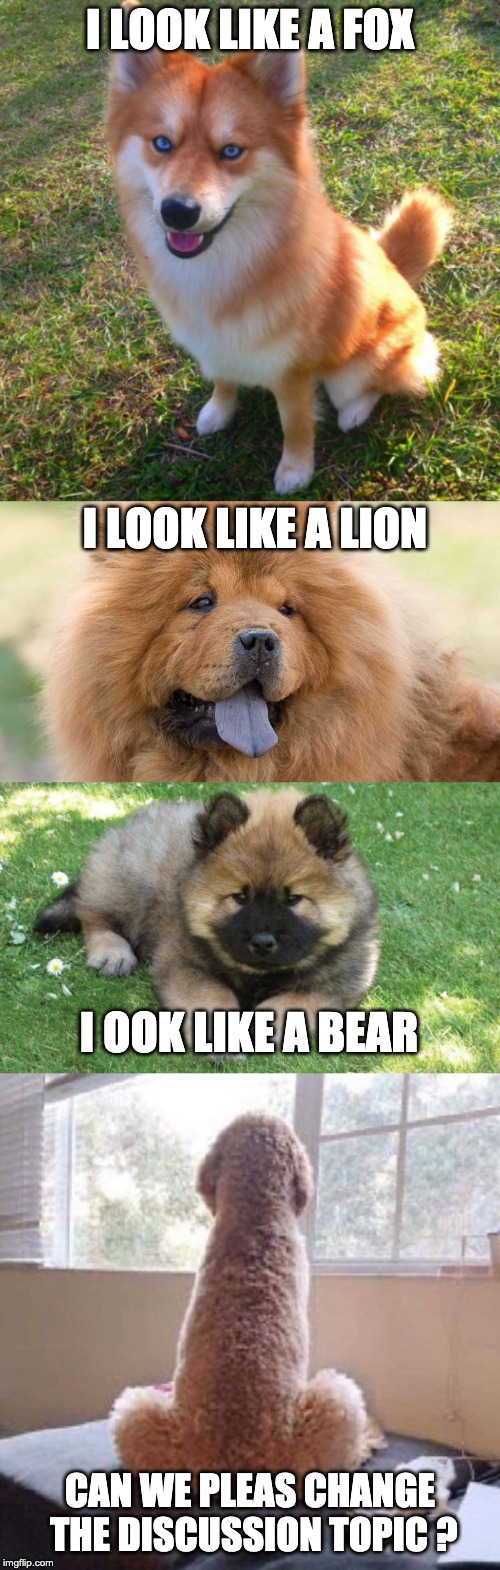 Dog looks | I LOOK LIKE A FOX CAN WE PLEAS CHANGE THE DISCUSSION TOPIC ? I LOOK LIKE A LION I OOK LIKE A BEAR | image tagged in dogs,dog,funny,fun,meme,fox | made w/ Imgflip meme maker